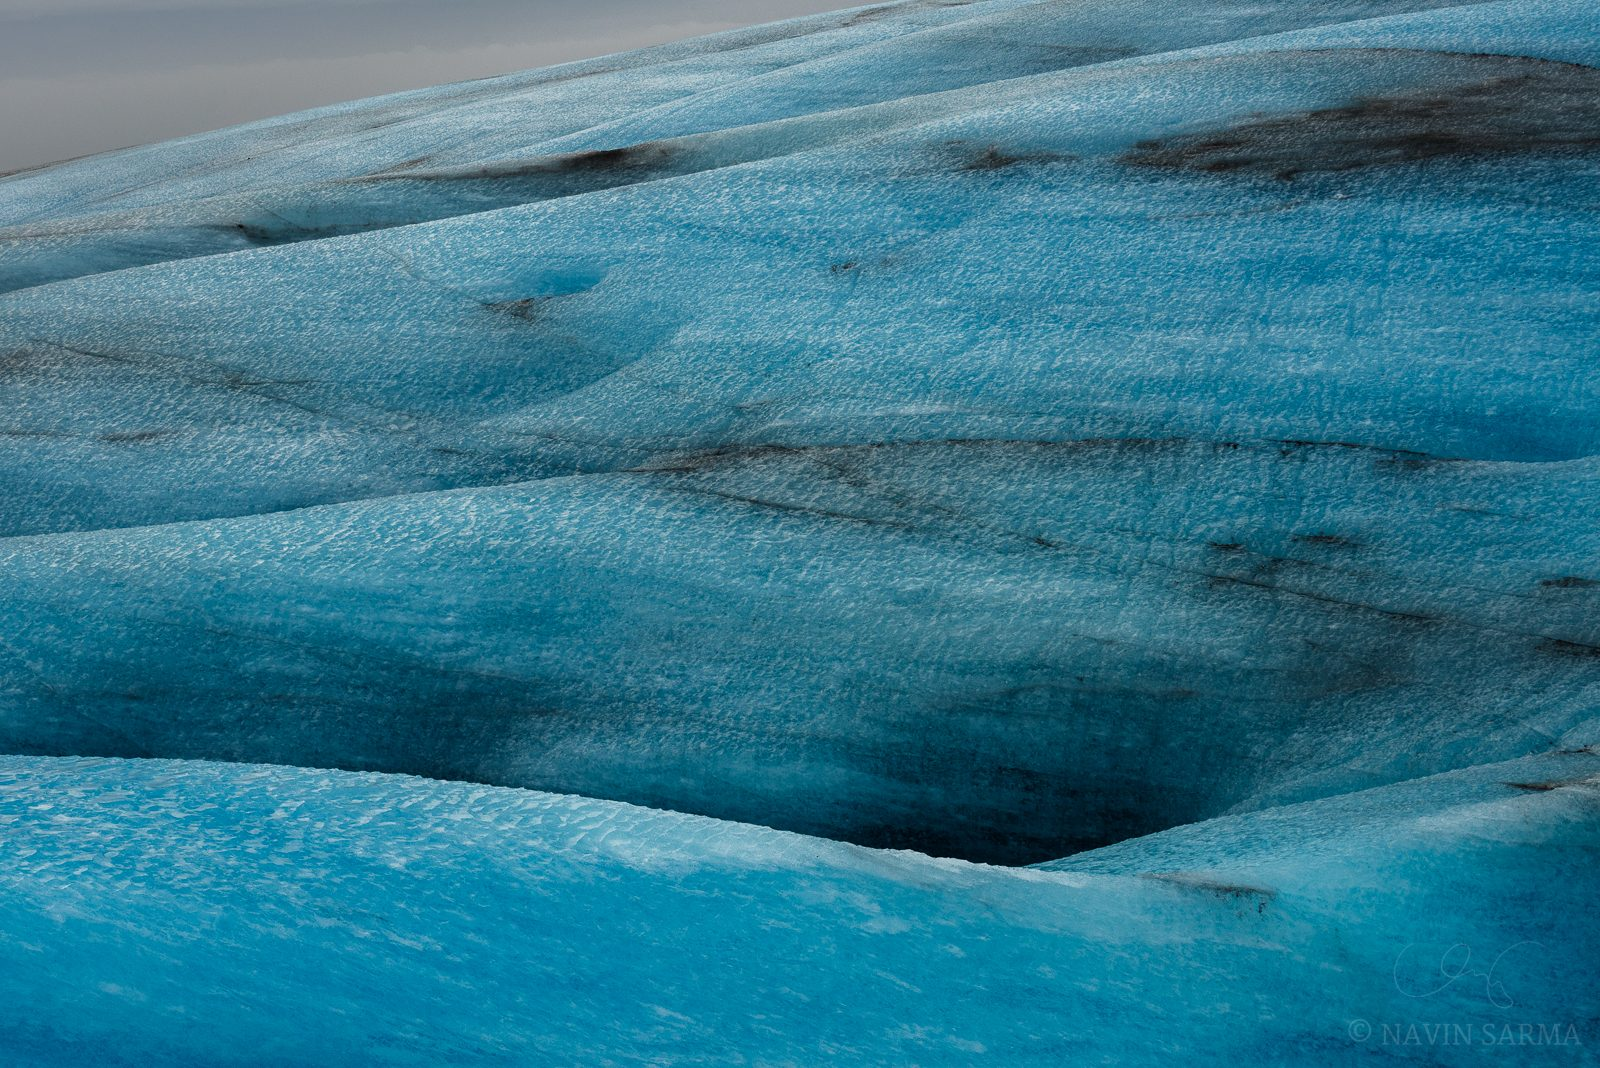 Ice Hills - Undulating hills fade into the distance atop the Vatnajökull glacier